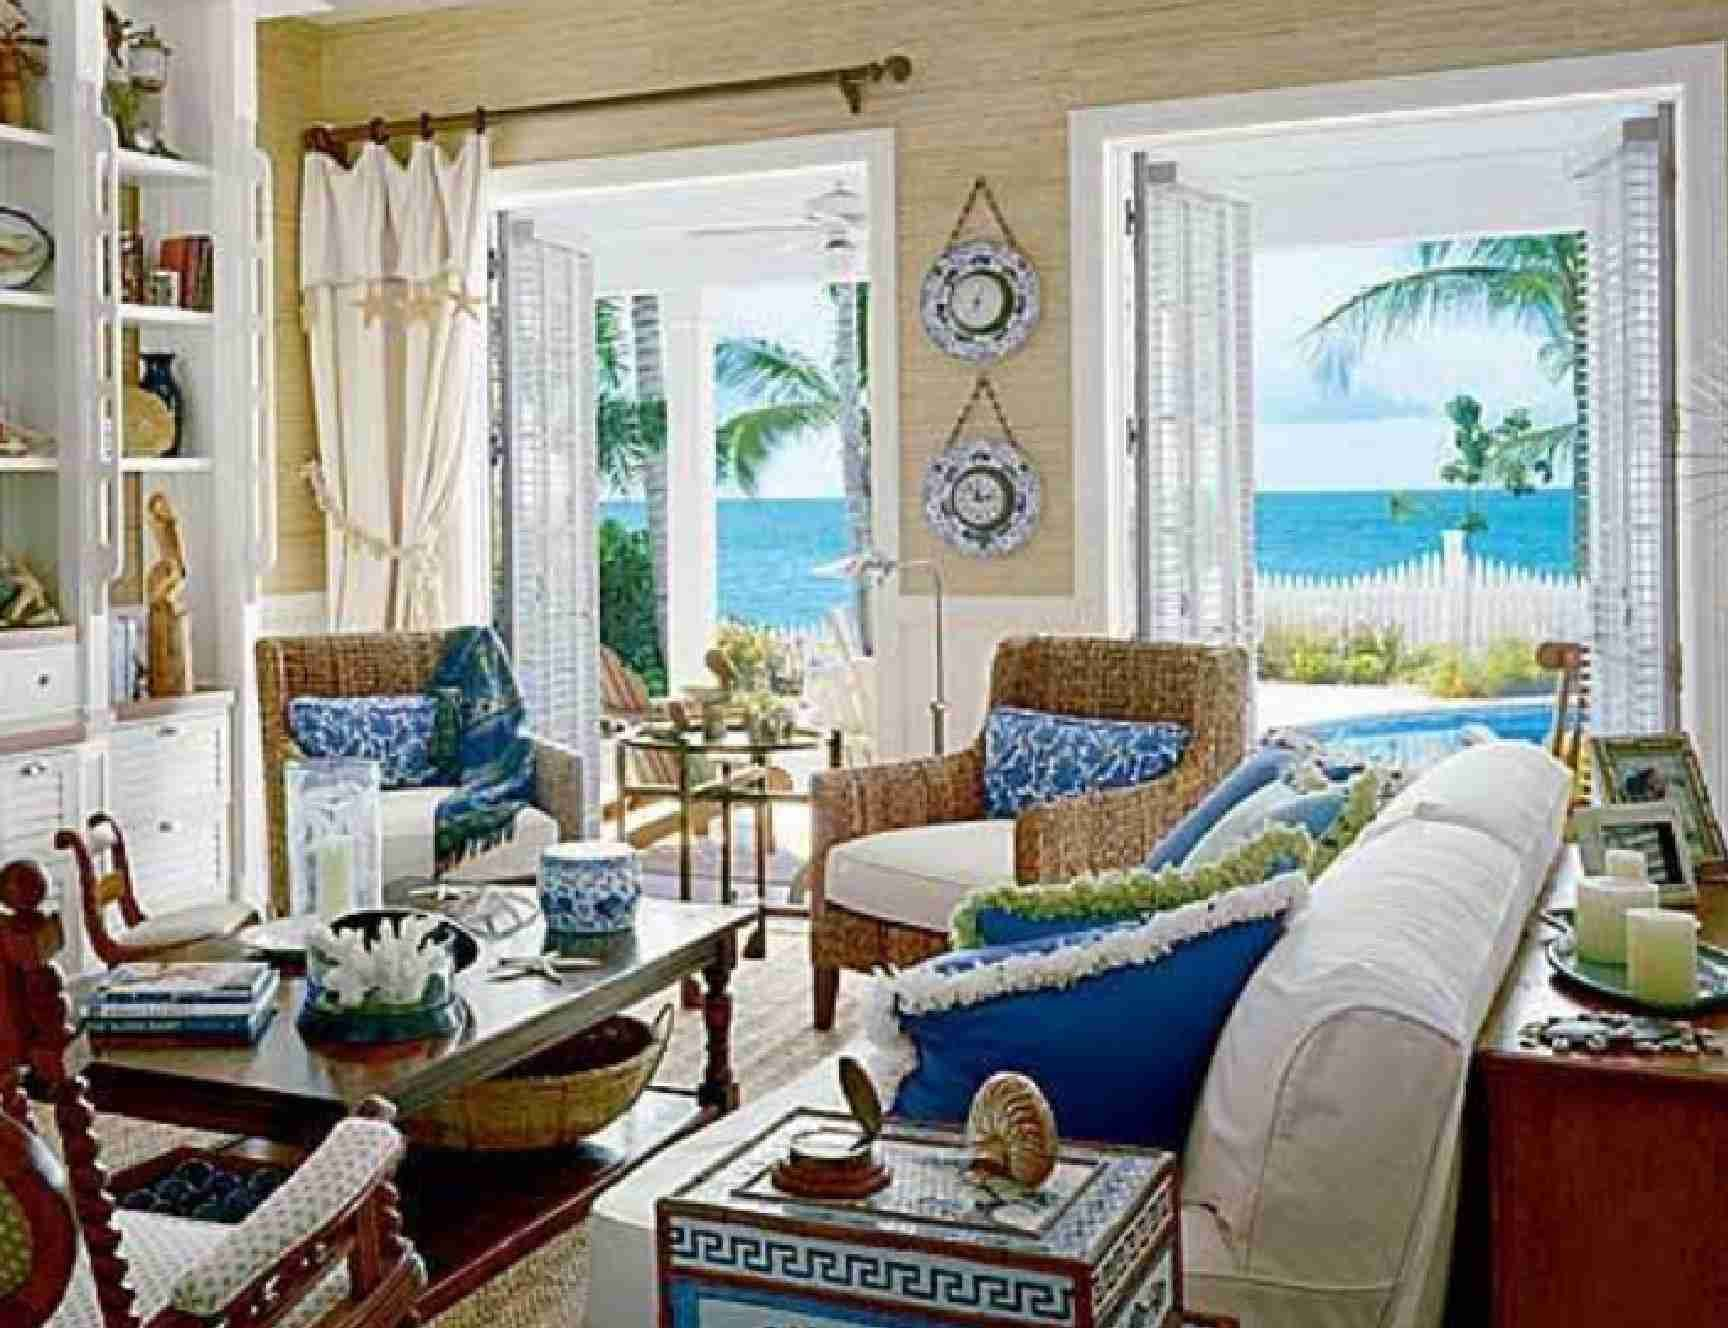 Beach Themed Living Room Design Beauteous Google Image Result For Httpwwwhomeinnenwpcontent Decorating Inspiration